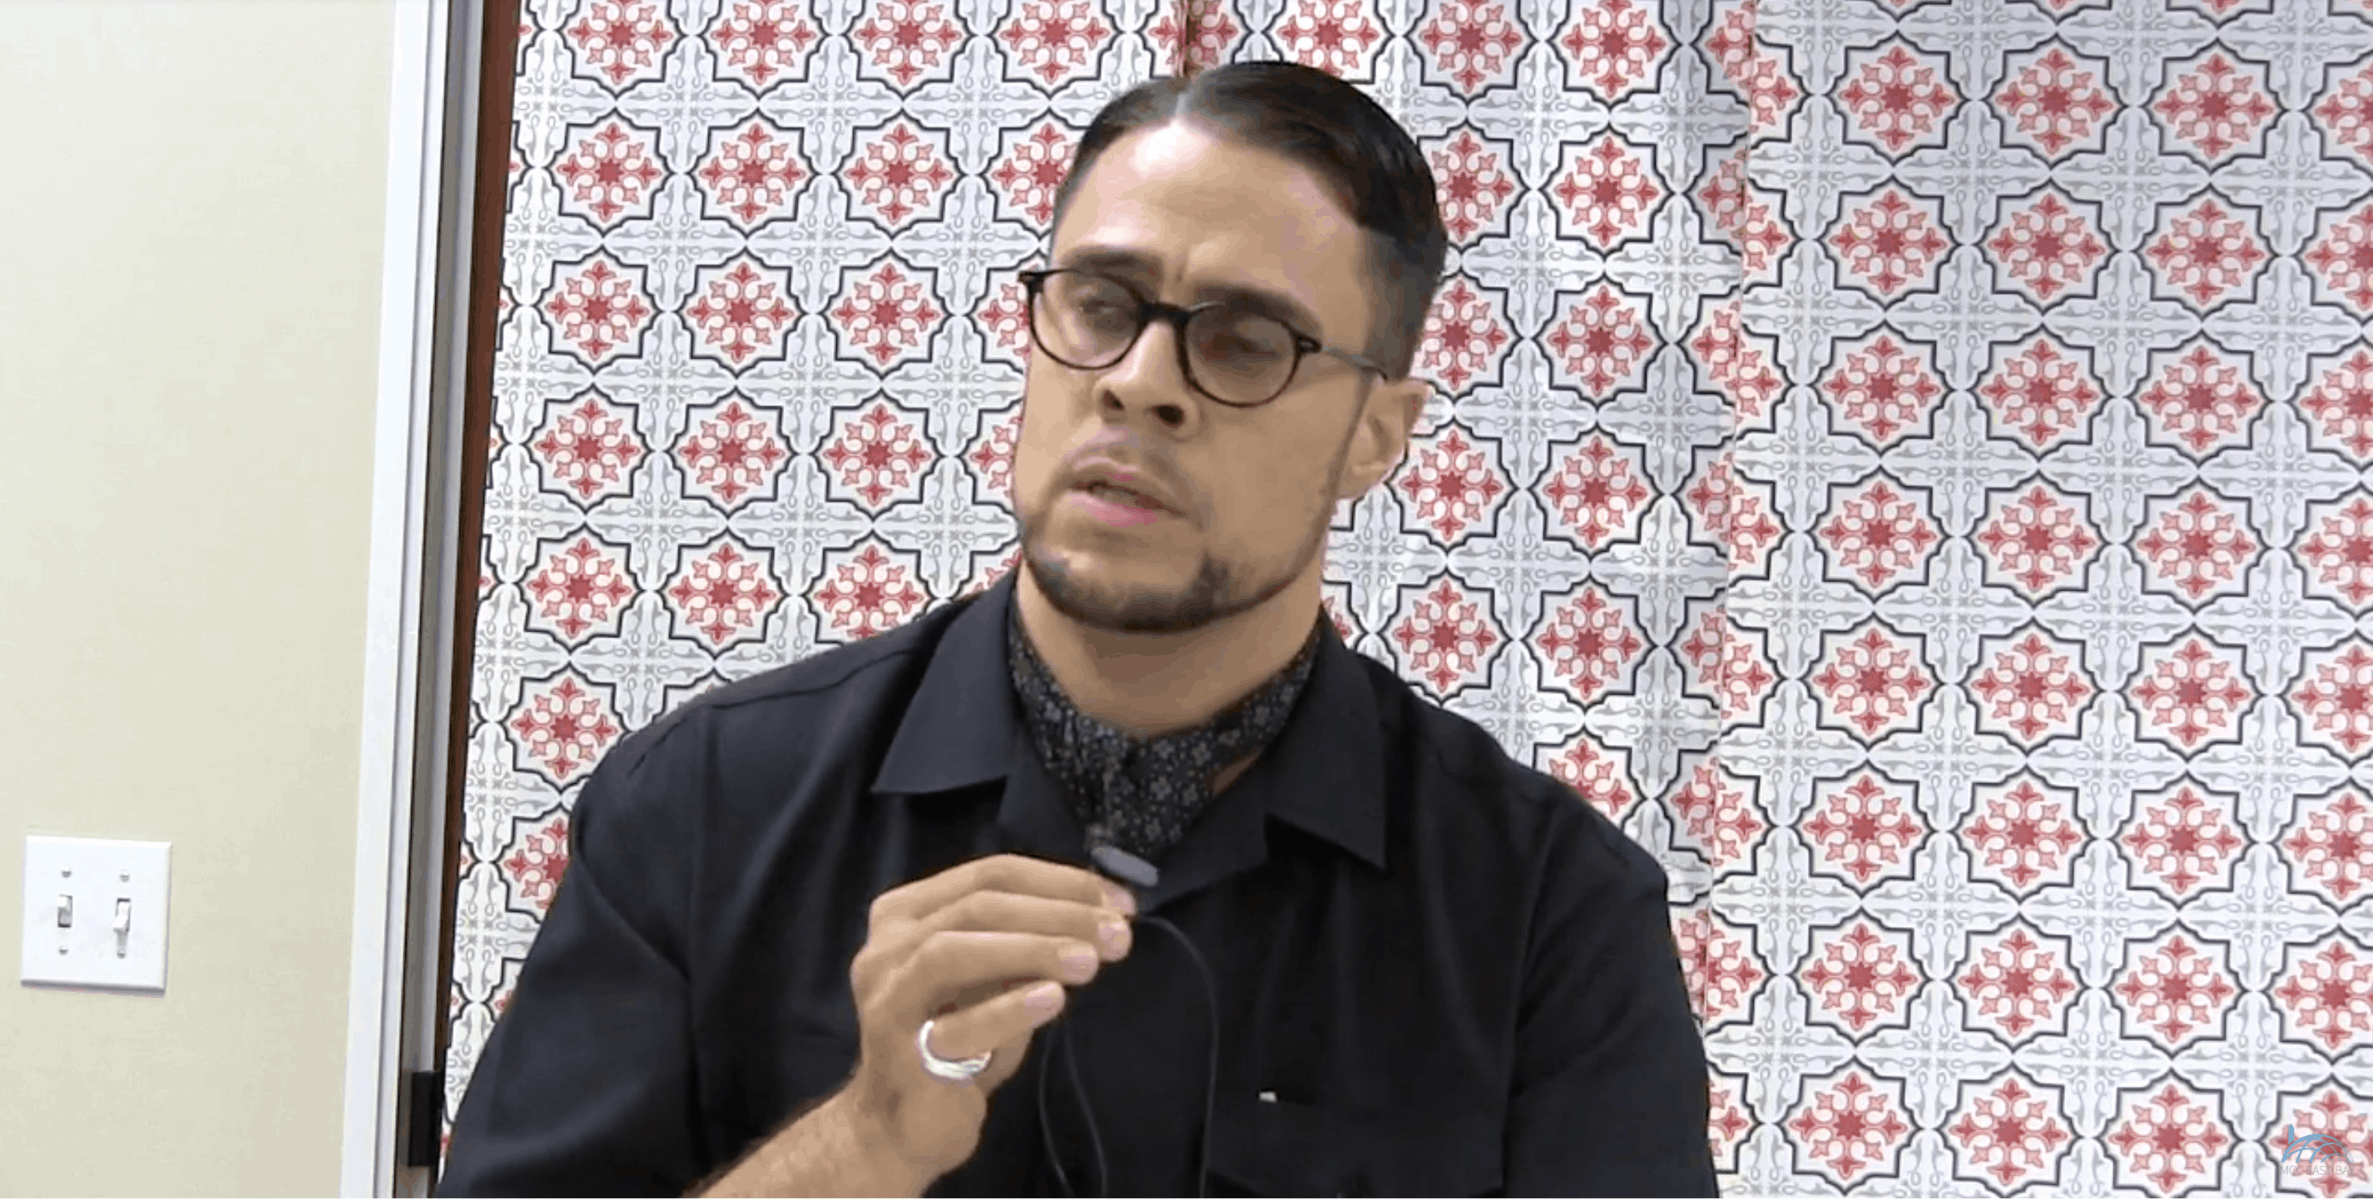 Usama Canon – The New Muslim in the Mosque is the Canary in the Coal Mine